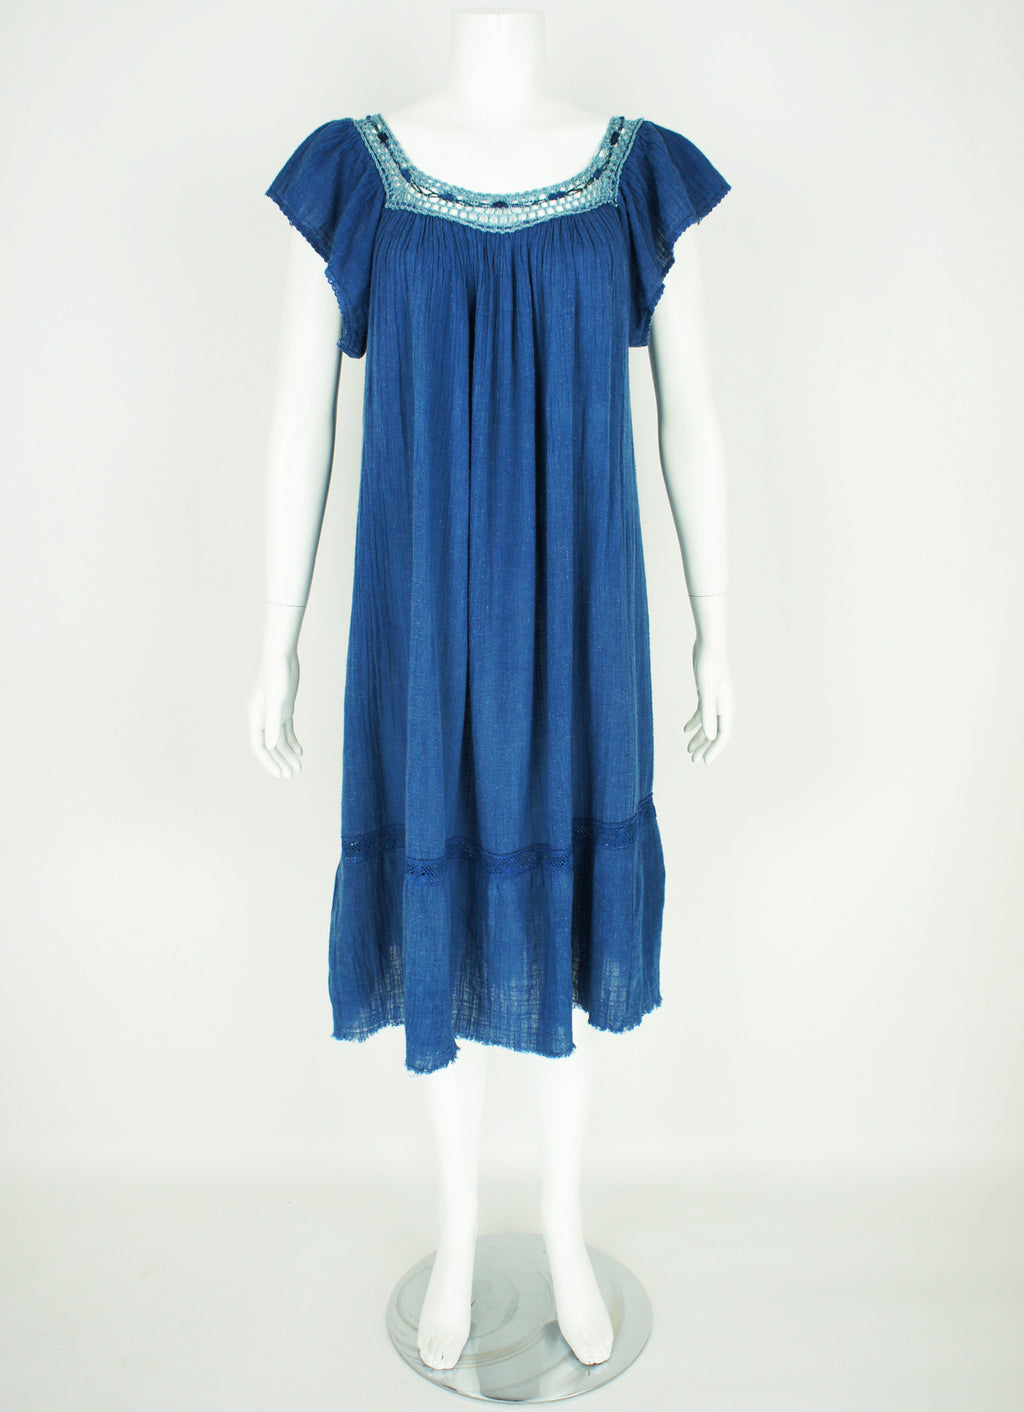 Indigo Vintage Boho Hippy Dress